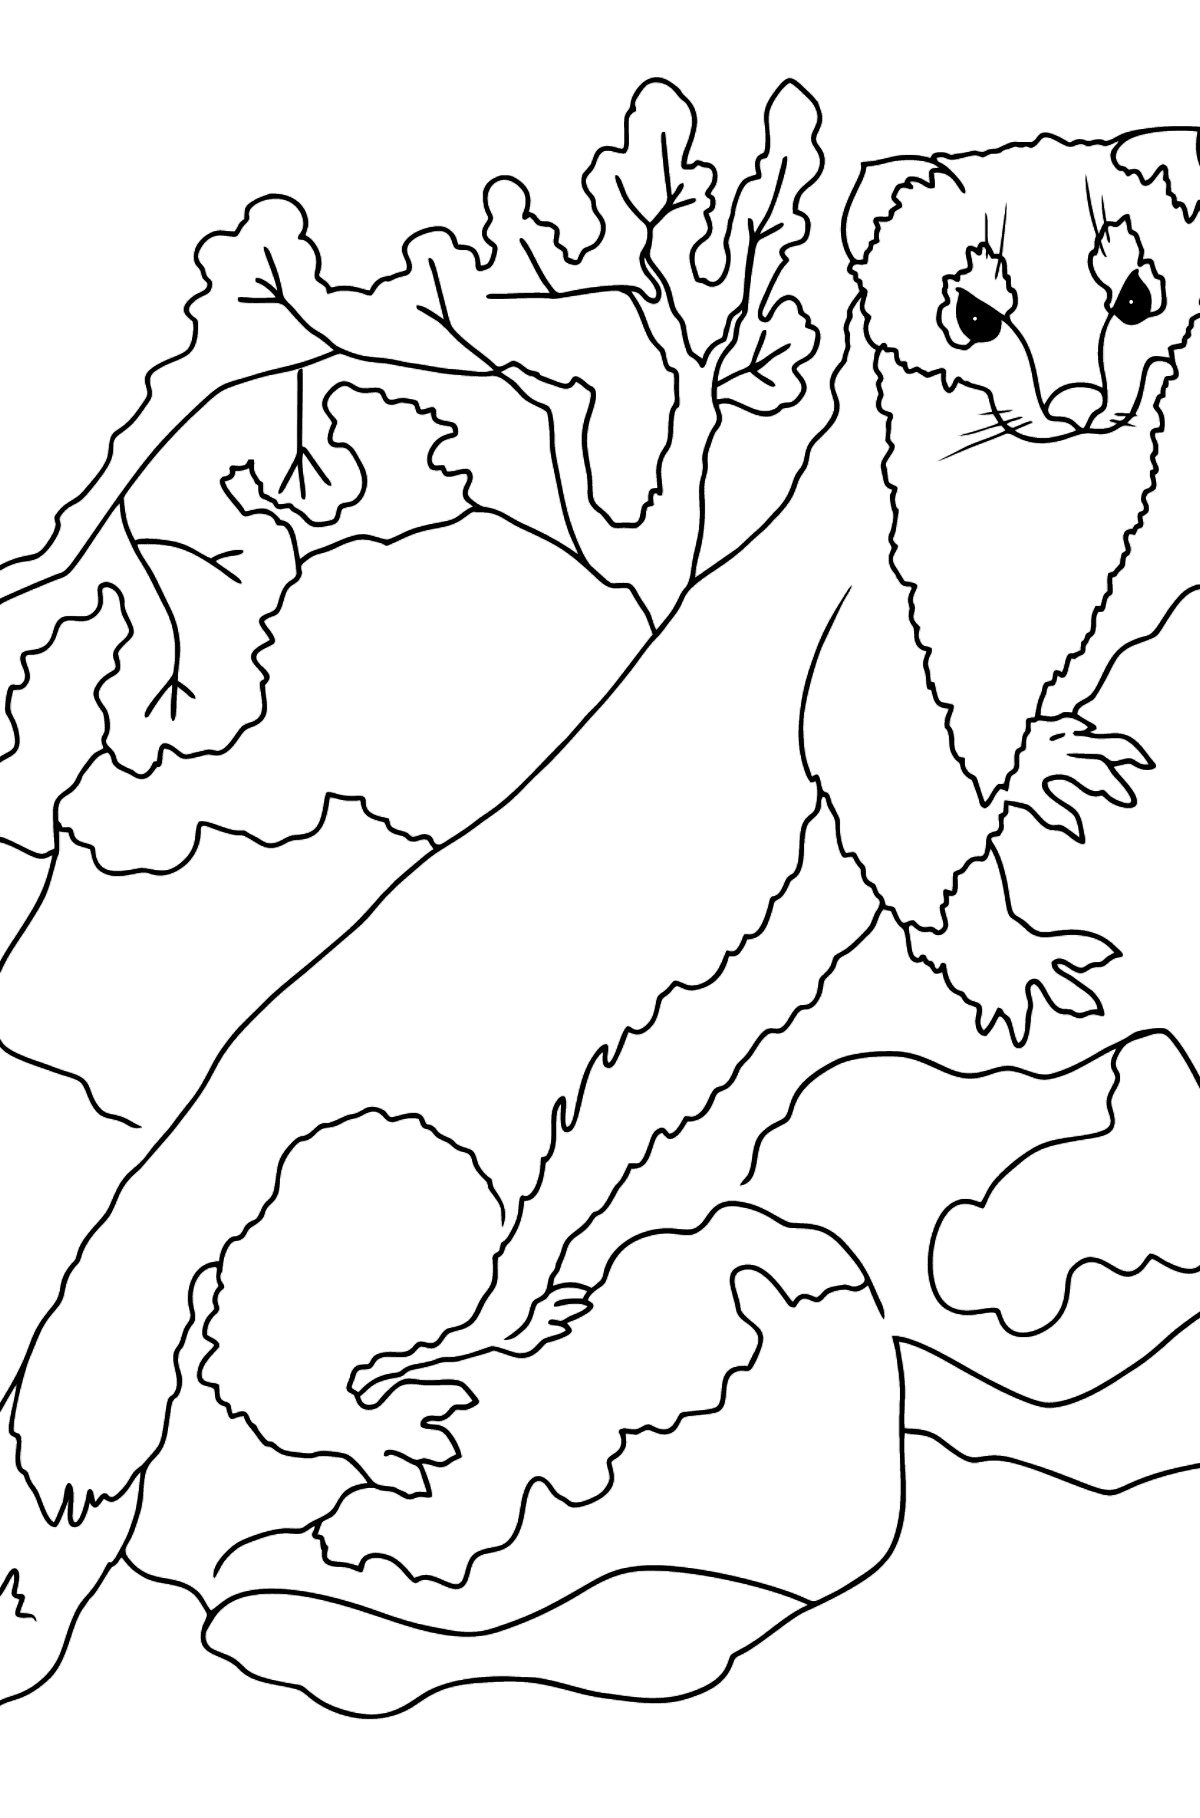 Coloring Page - An Ermine - A Small Fast Animal - Coloring Pages for Kids